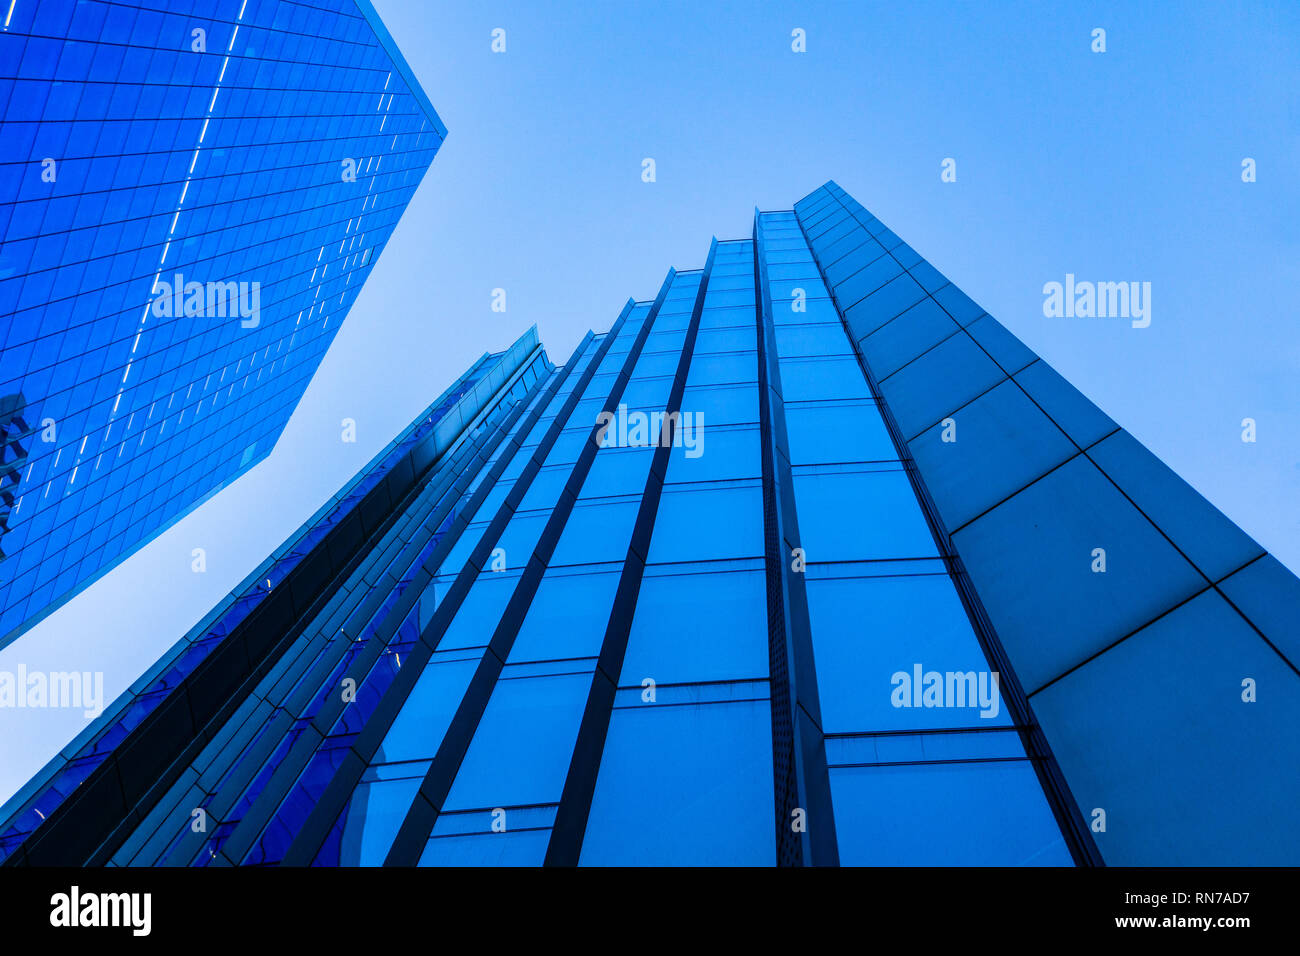 The Willis Building and The Scalpel [London] - Stock Image